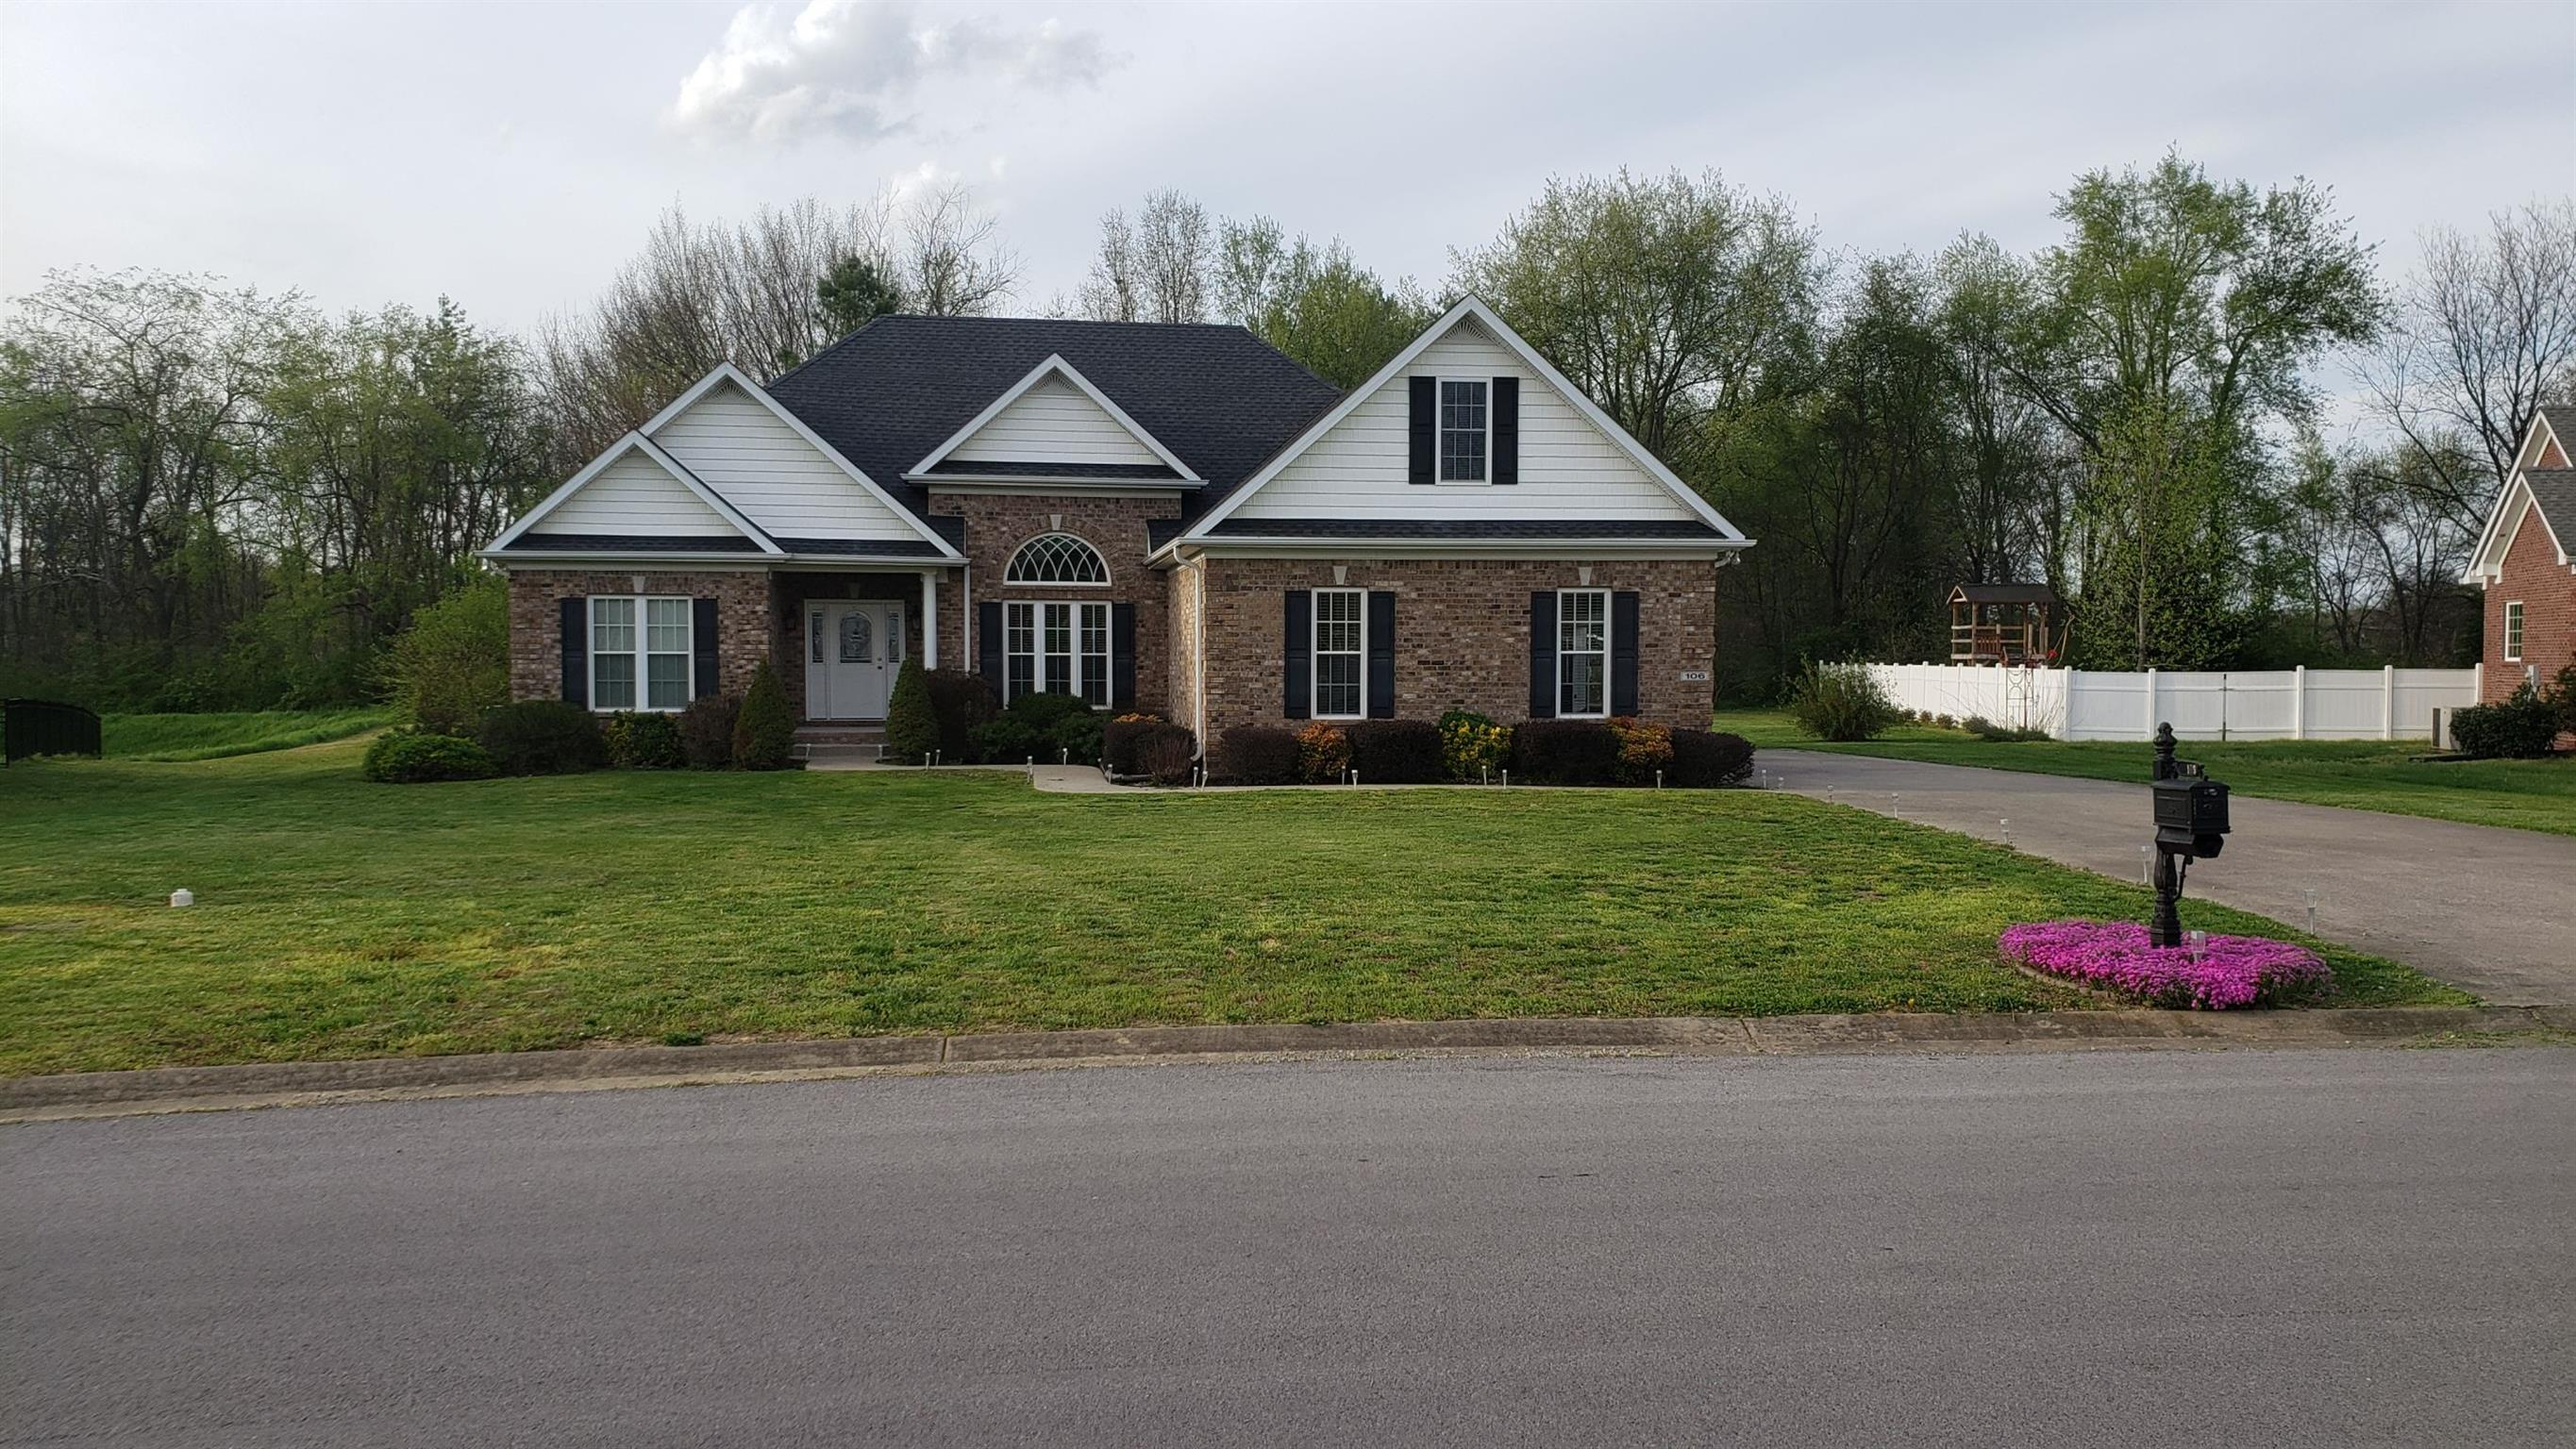 106 Hunters Crossing, Franklin, KY 42134 - Franklin, KY real estate listing